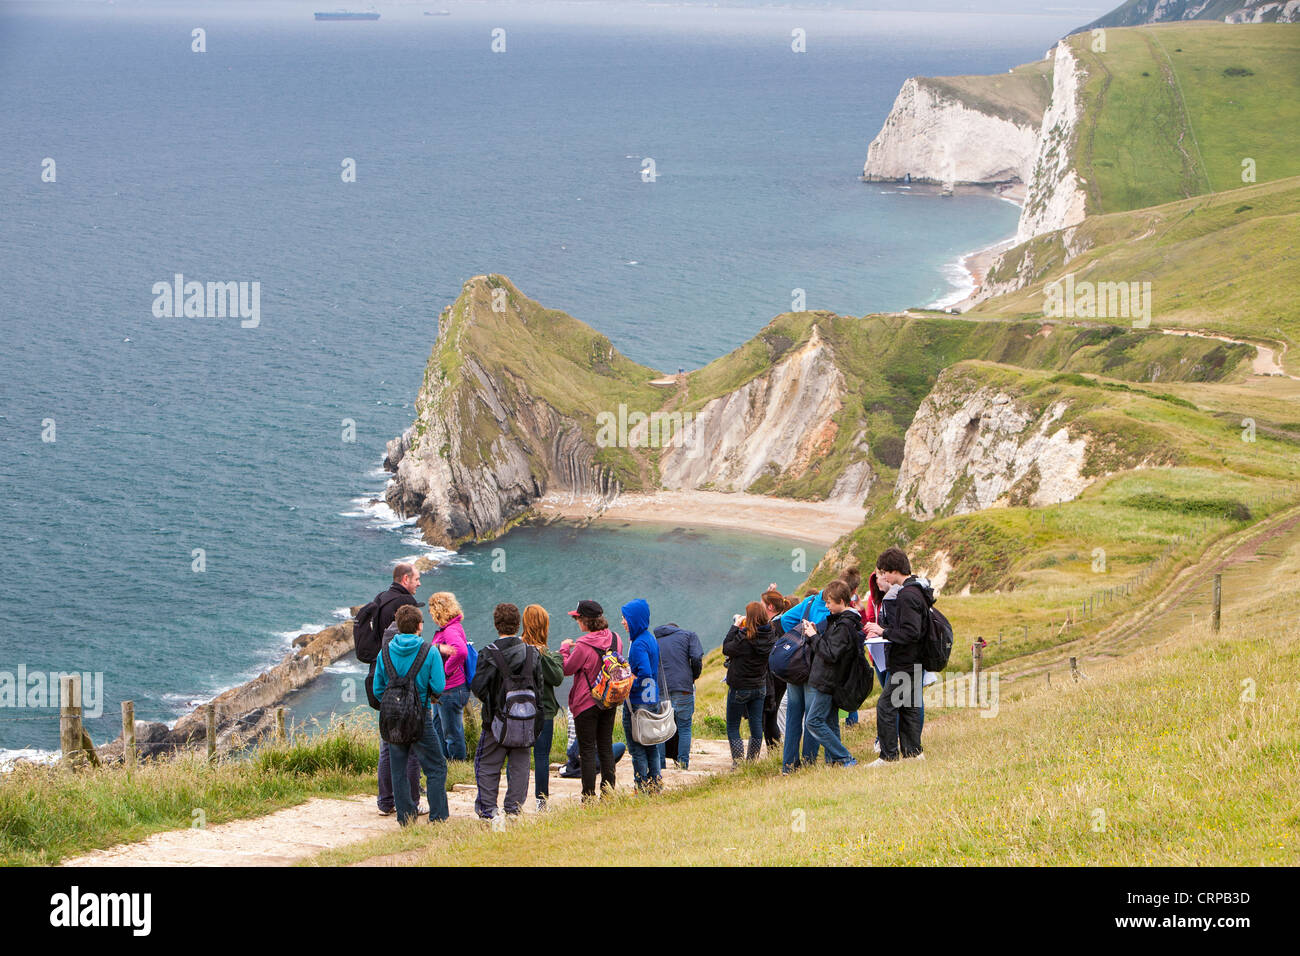 A school field trip on the cliff tops at Durdle Door on the Dorset coast near Lulworth, UK - Stock Image